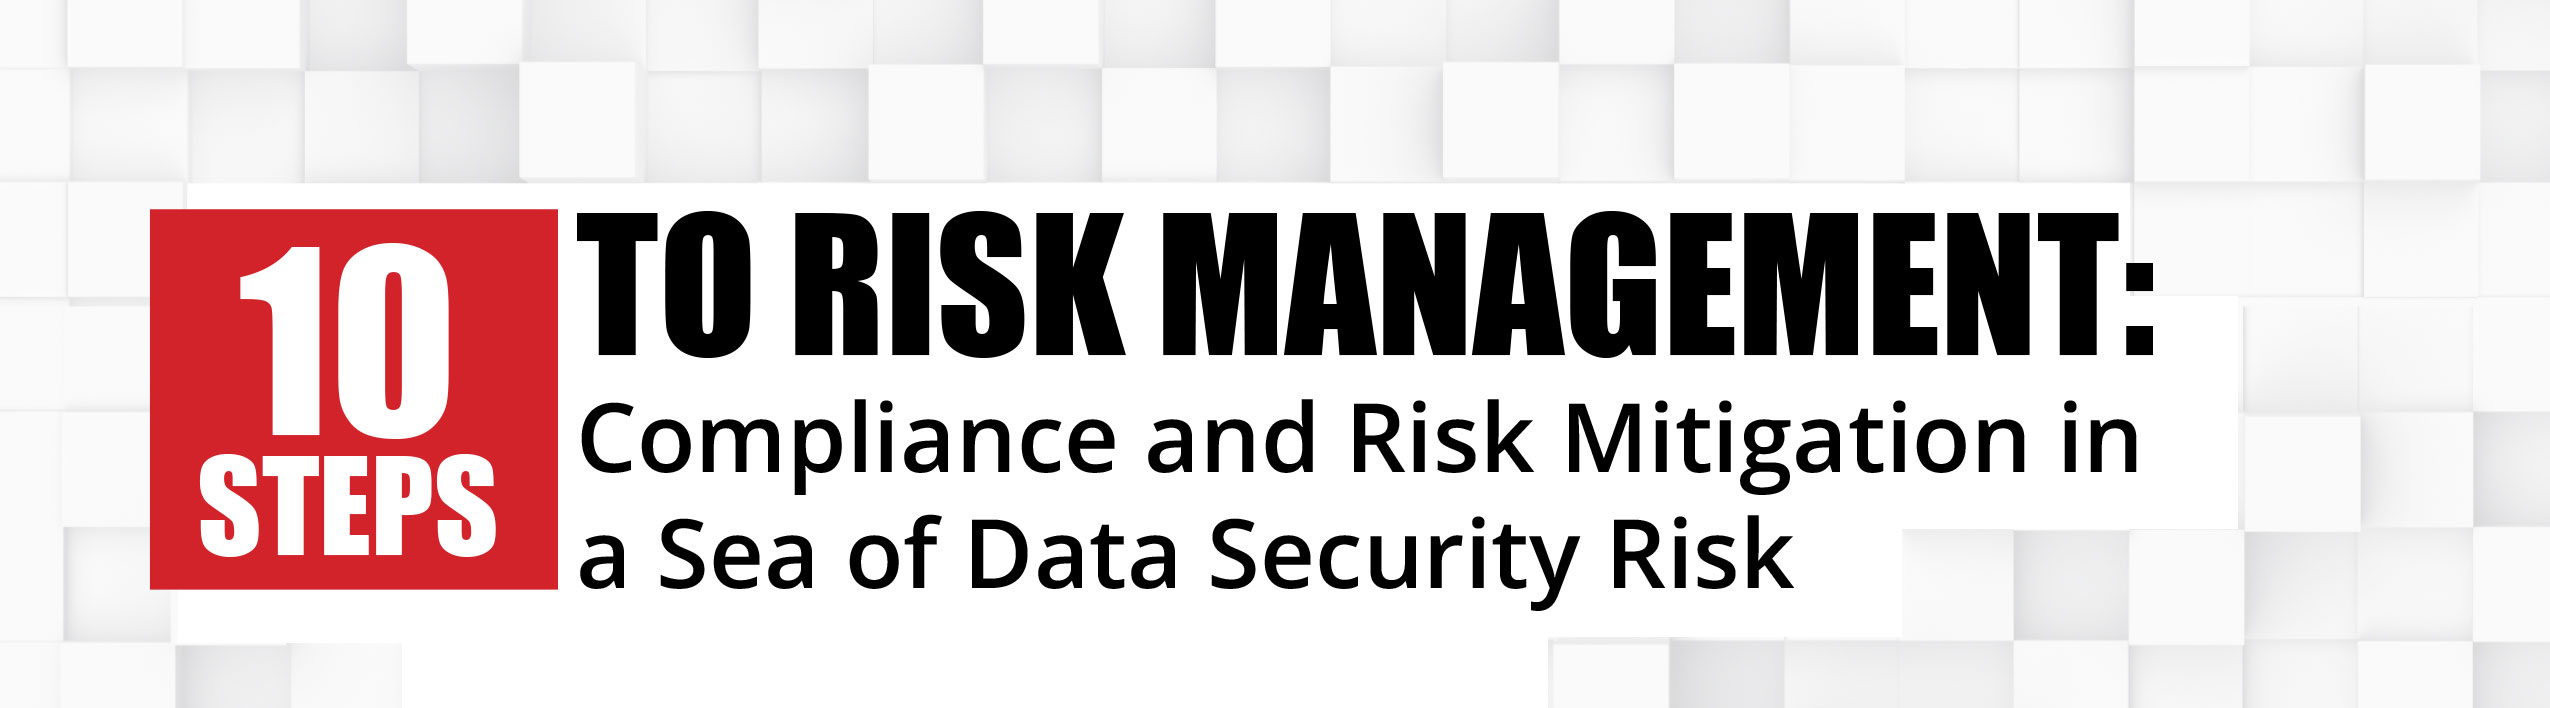 10 Steps to Risk Management: Compliance and Risk Mitigation